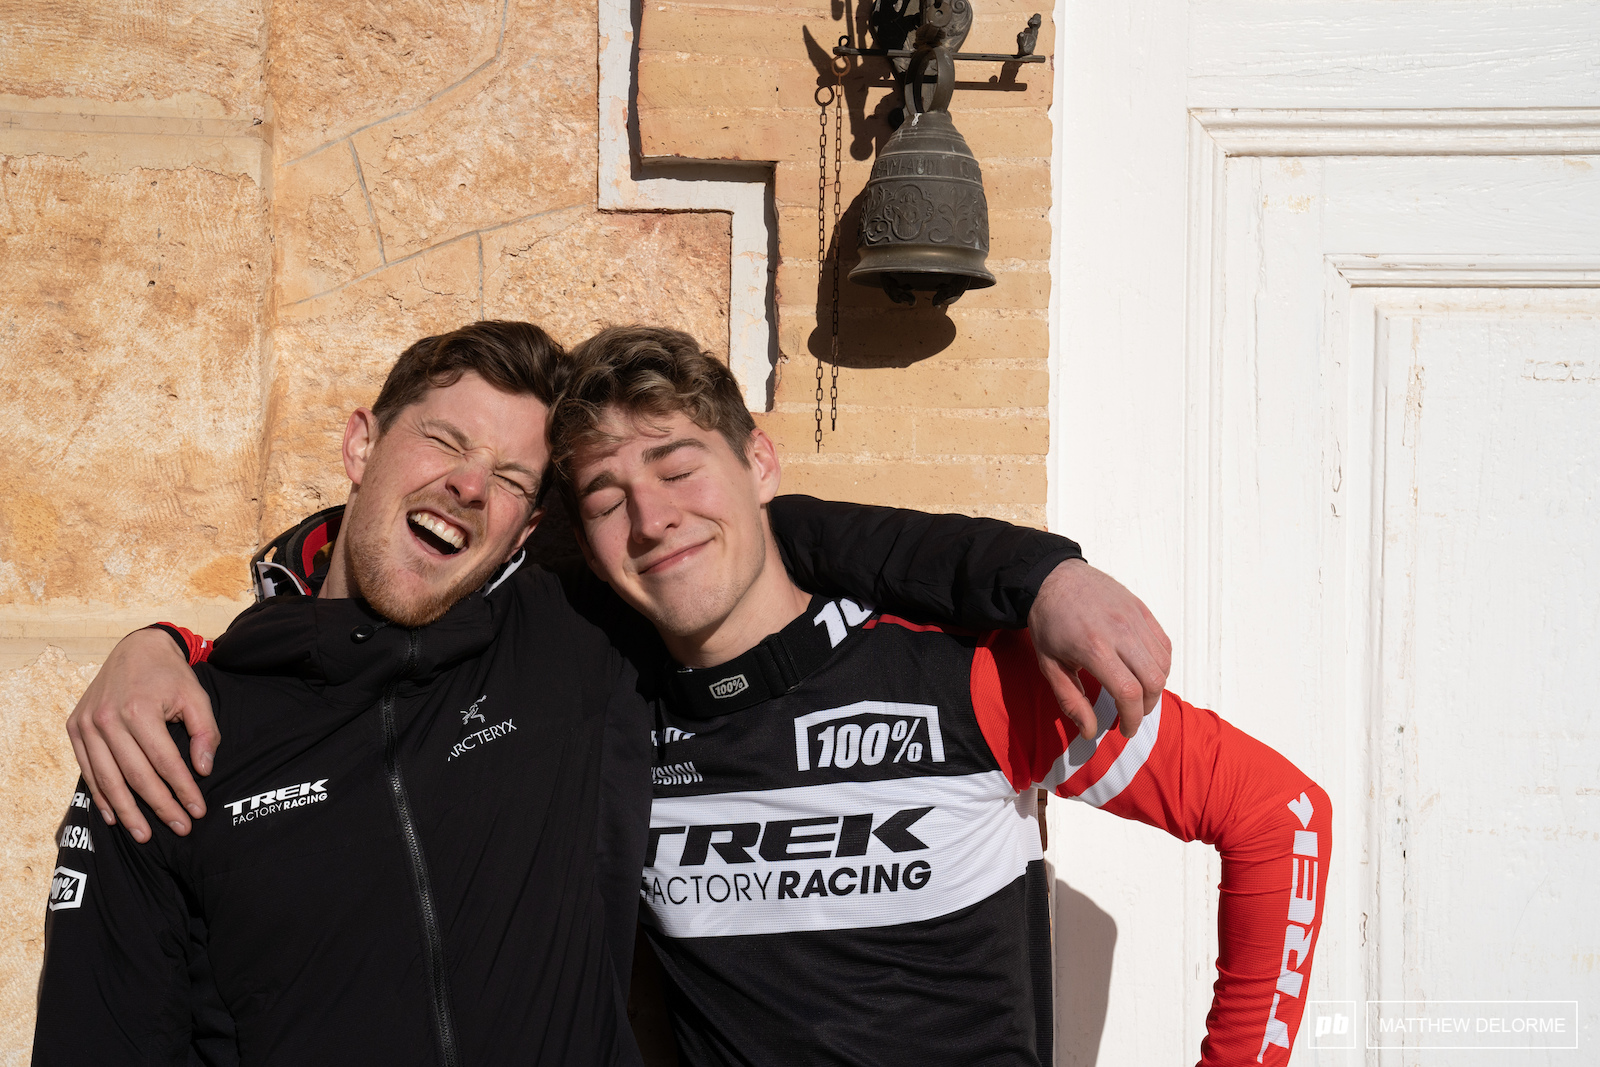 Ruaridh and Reece are stoked to be racing under the same program.